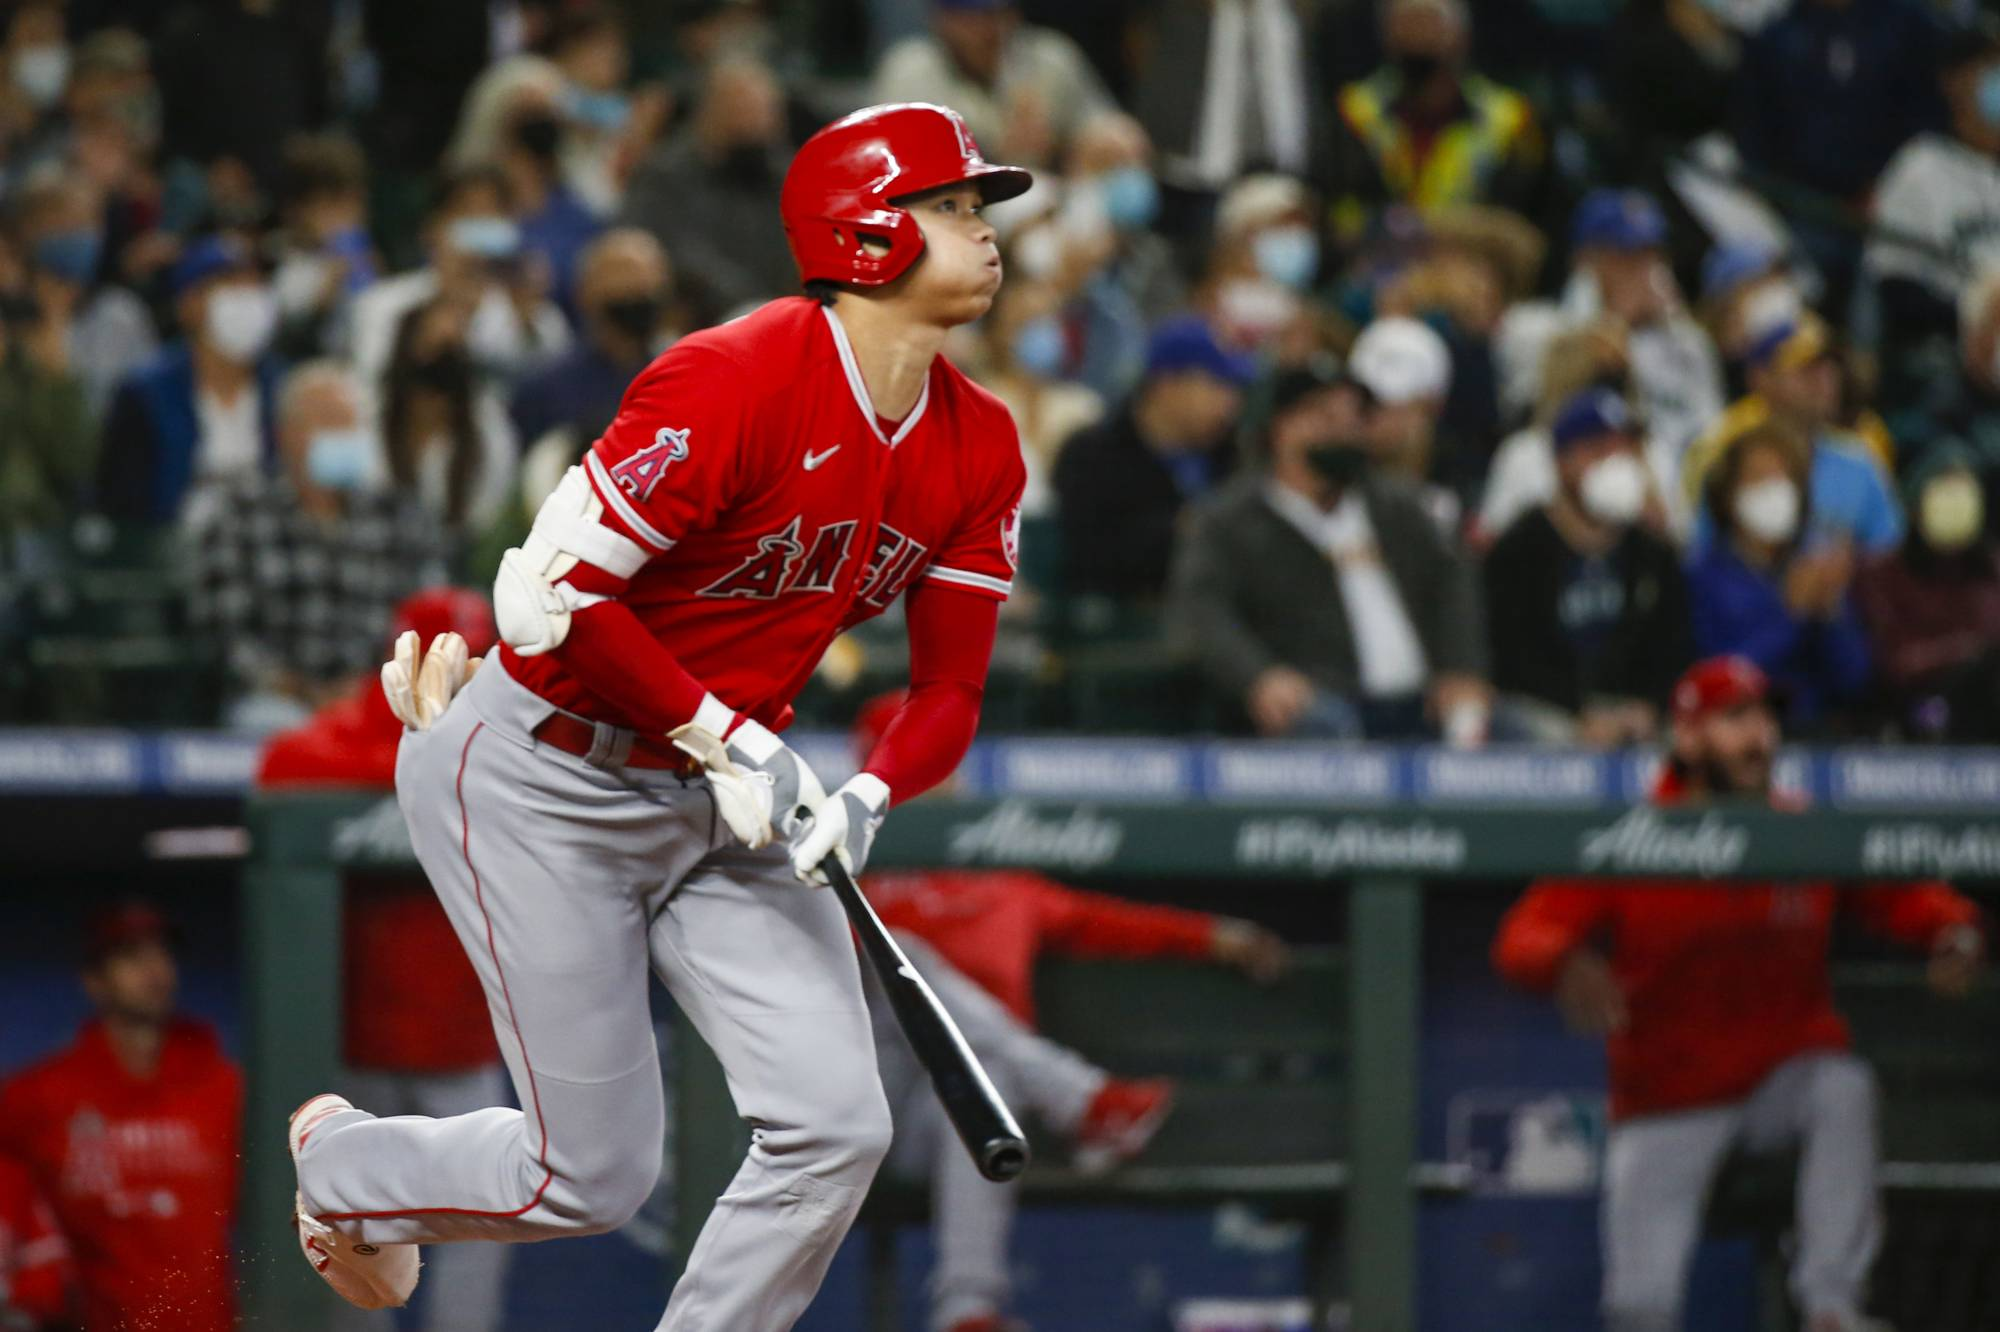 Shohei Ohtani is widely expected to be named AL MVP this fall.  | USA TODAY / VIA REUTERS